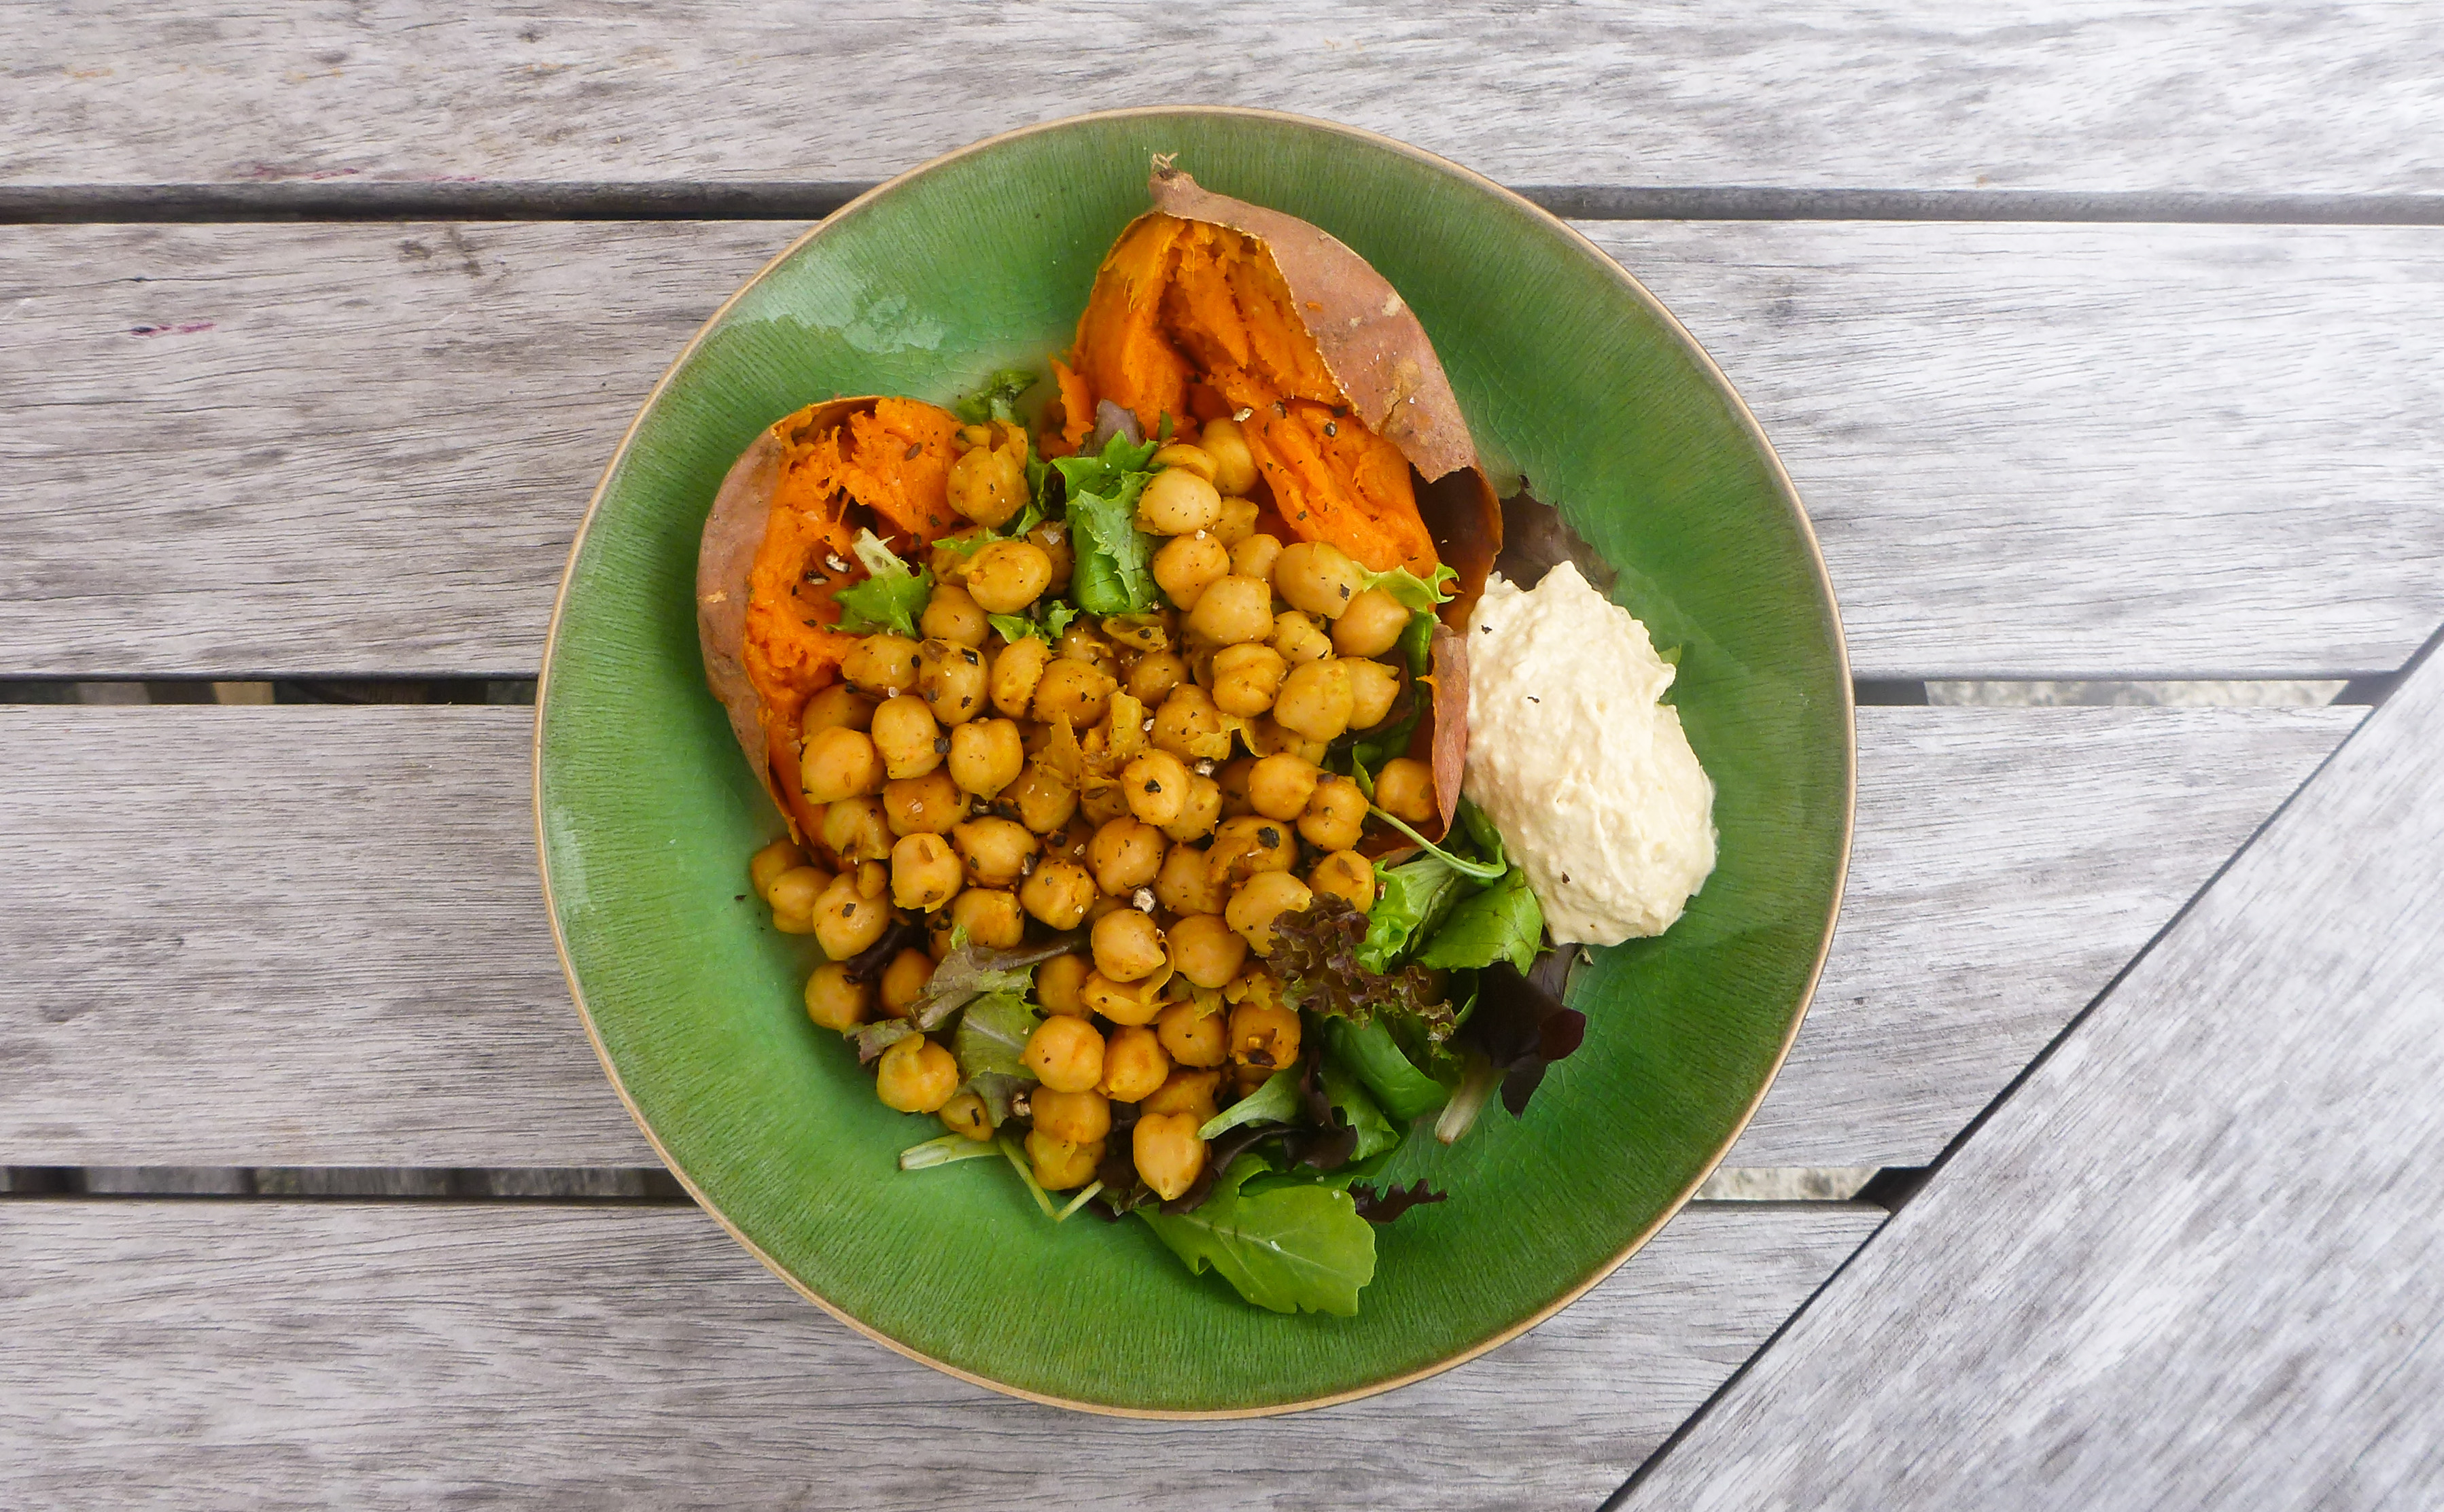 Baked Sweet Potato with Curried Chickpeas, Greens and Hummus | Food ...